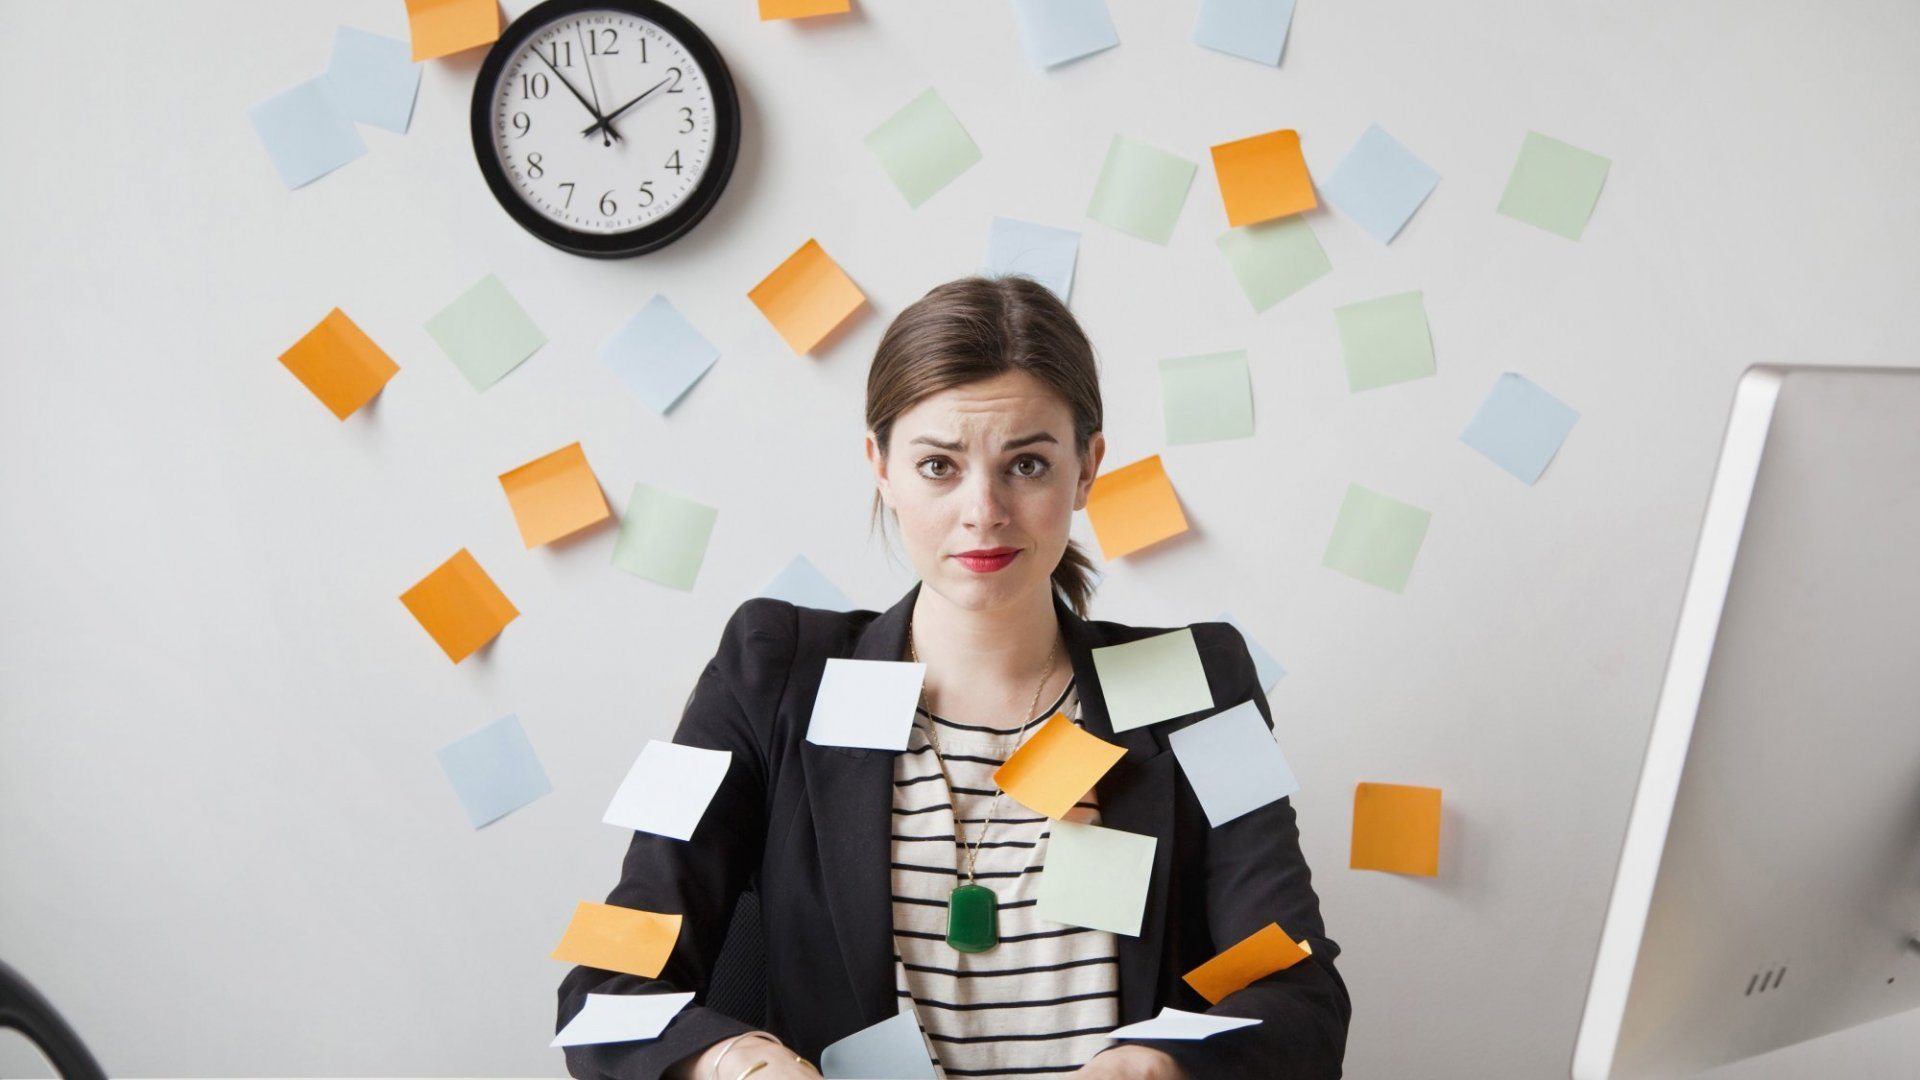 Need More than 24 Hours? 7 Secrets to Finding More Time in a Day